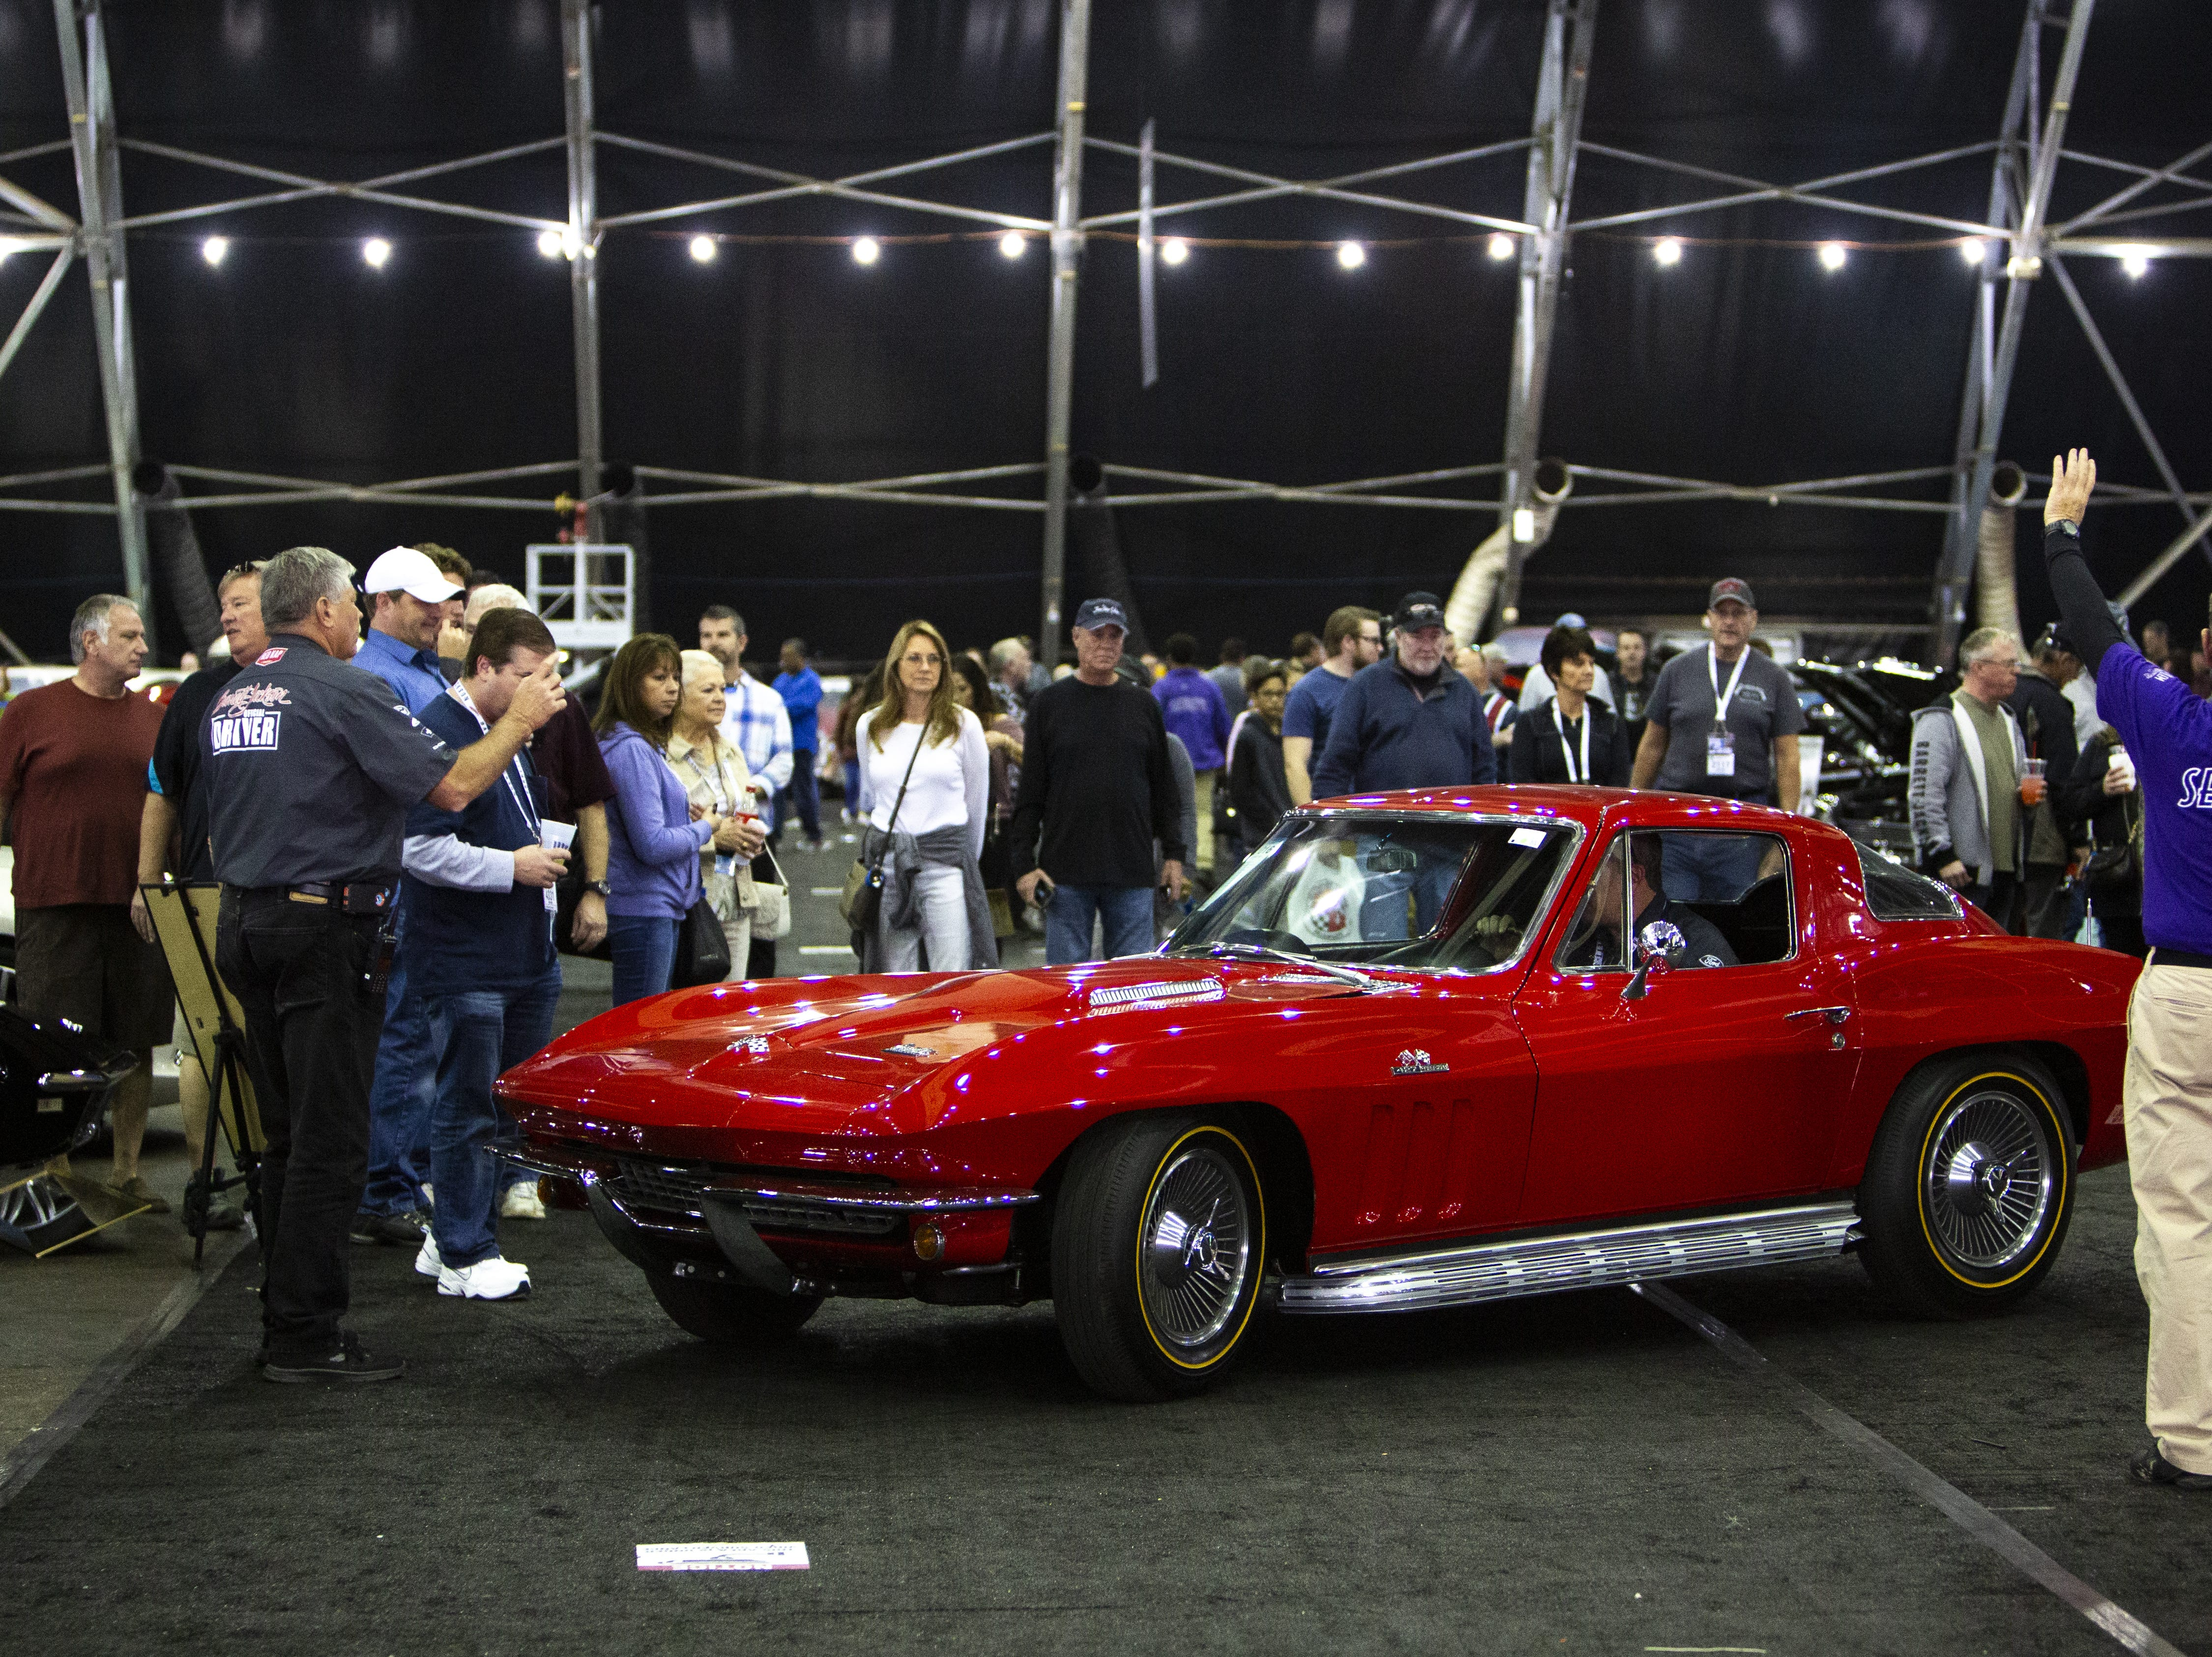 A crowd watches security direct a 1966 Chevrolet Corvette to its parking space inside the tents at the Barrett-Jackson Car Auction on Jan. 12, the first day of the event.